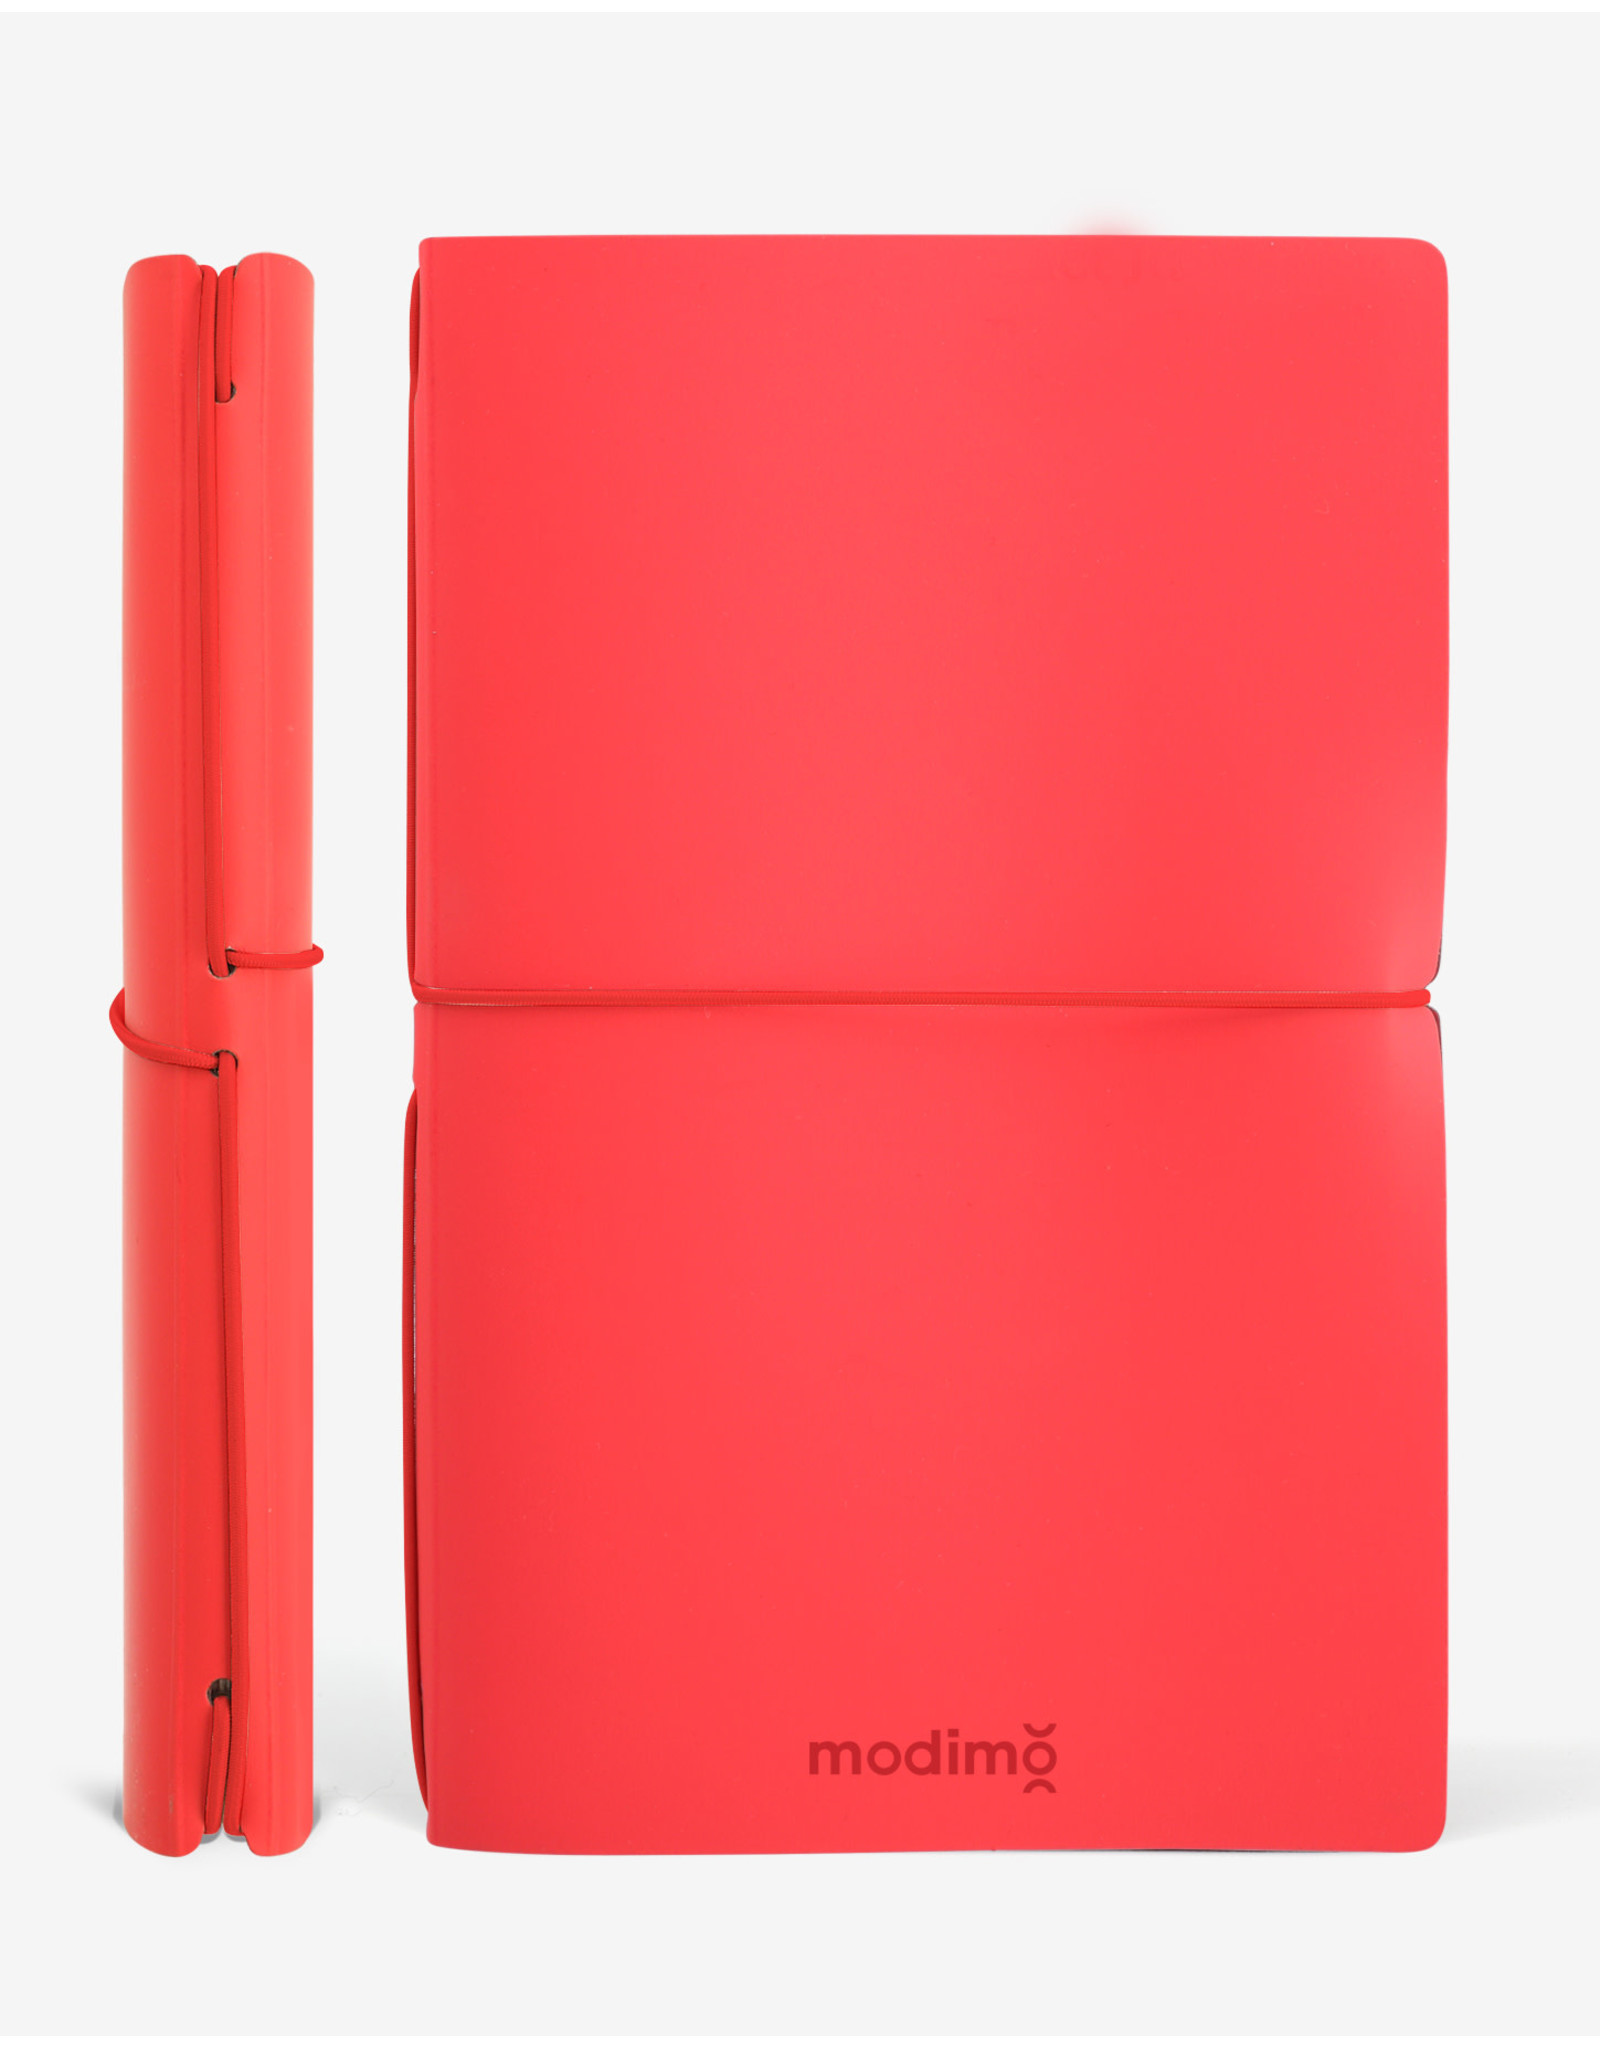 Modimo Bullet journal Red - My plan - White - 13 x 21 cm - Flexible regenerated leather